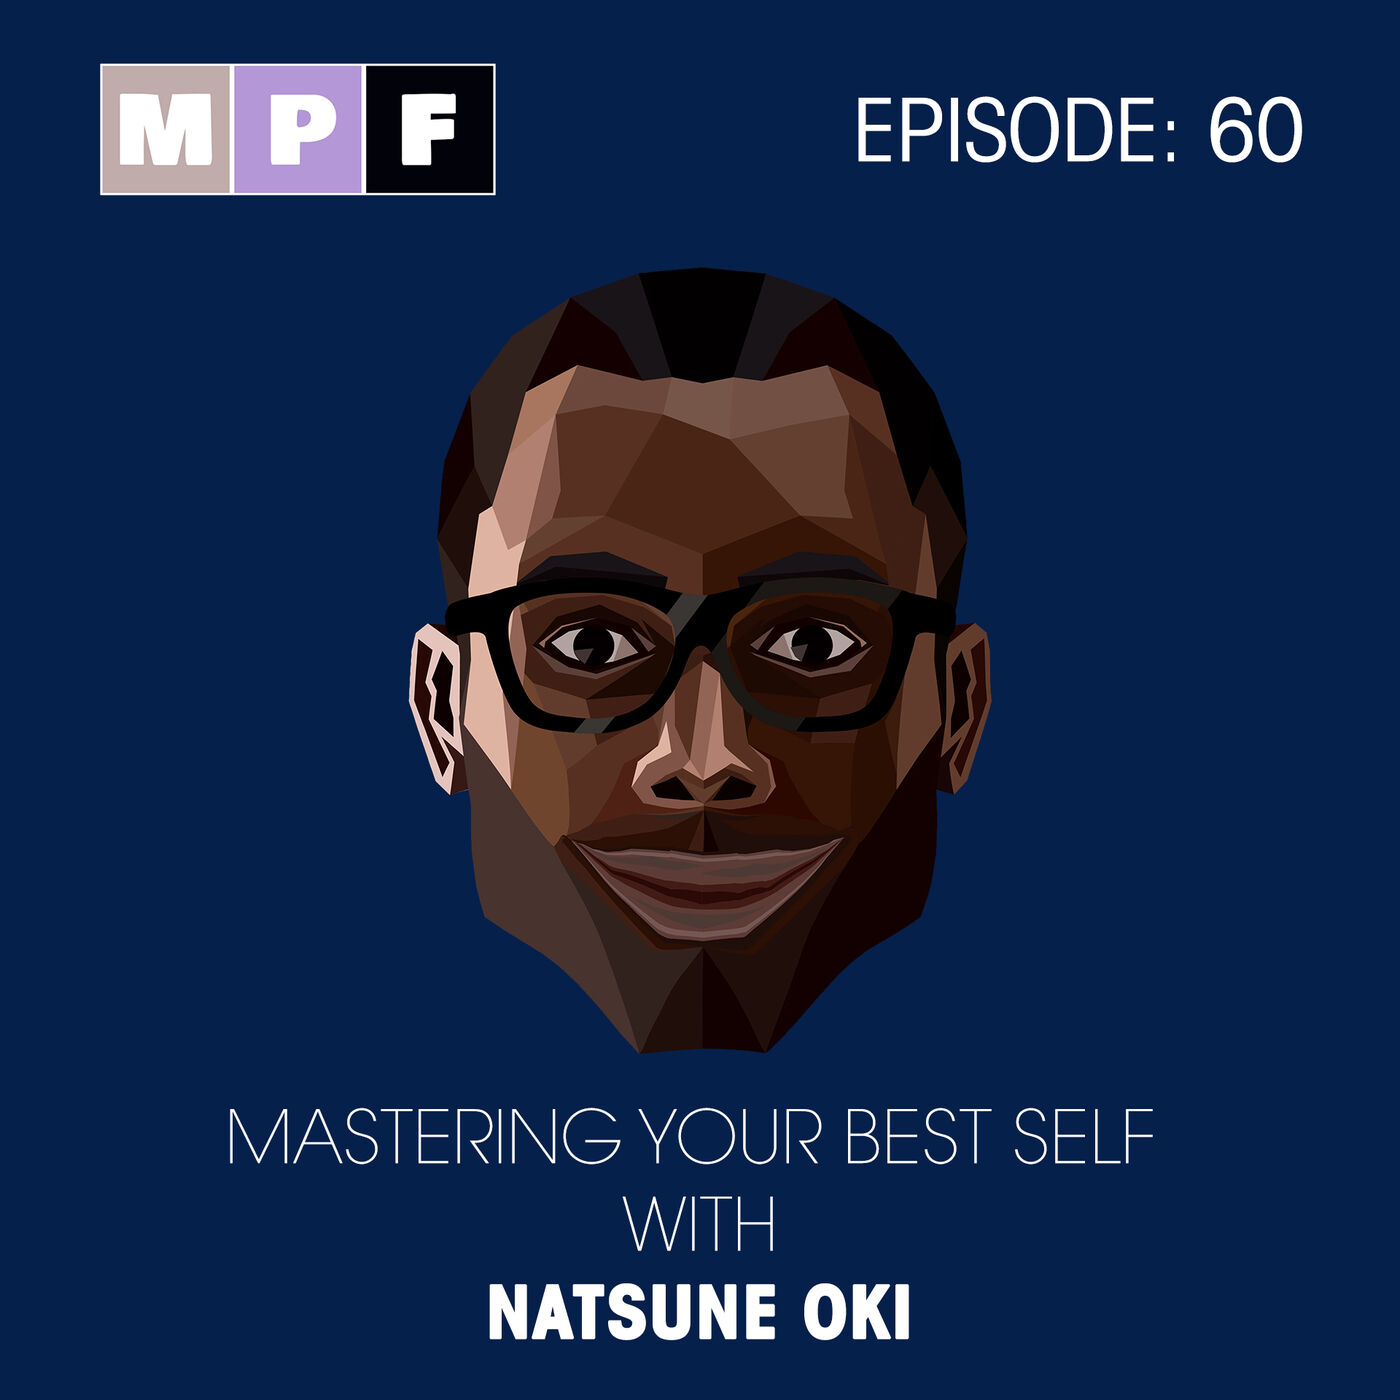 Mastering your Best Self with Natsune Oki